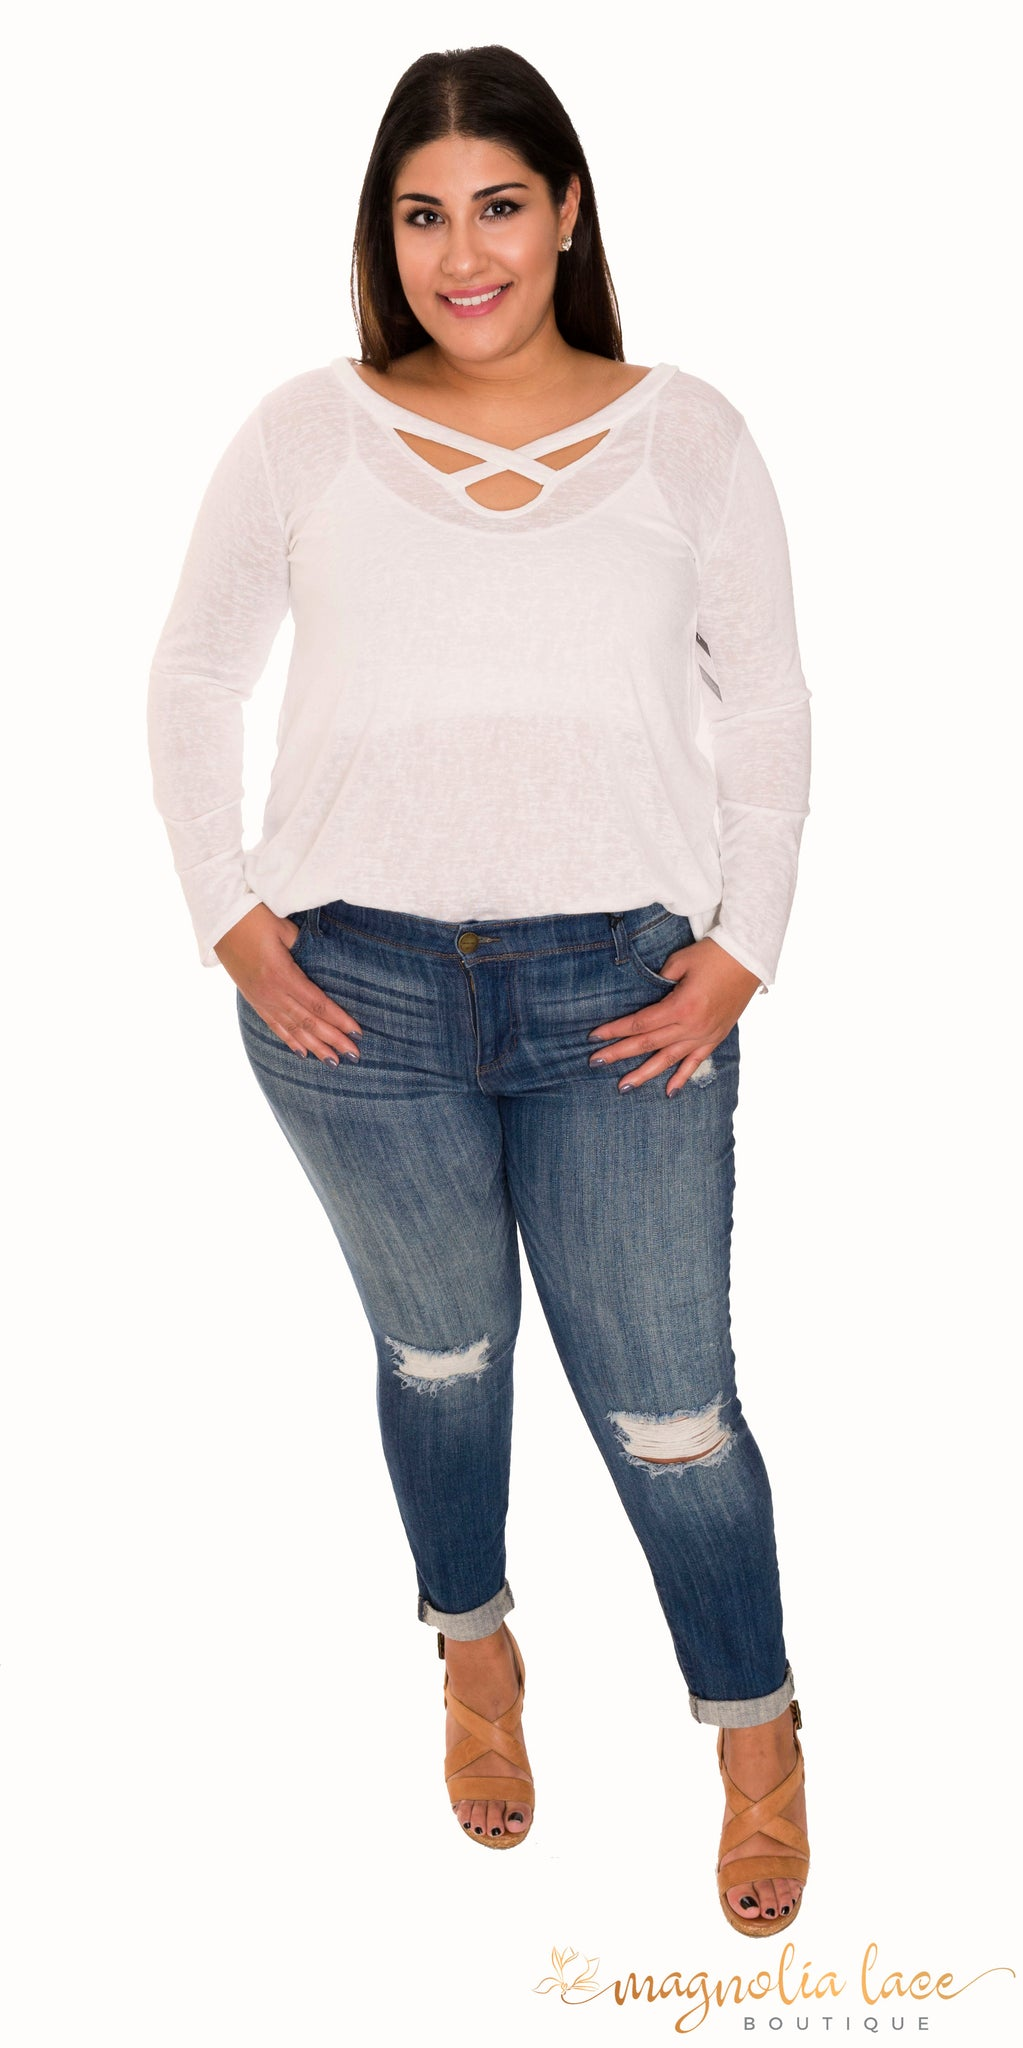 Joeys Jeans - Magnolia Lace Boutique